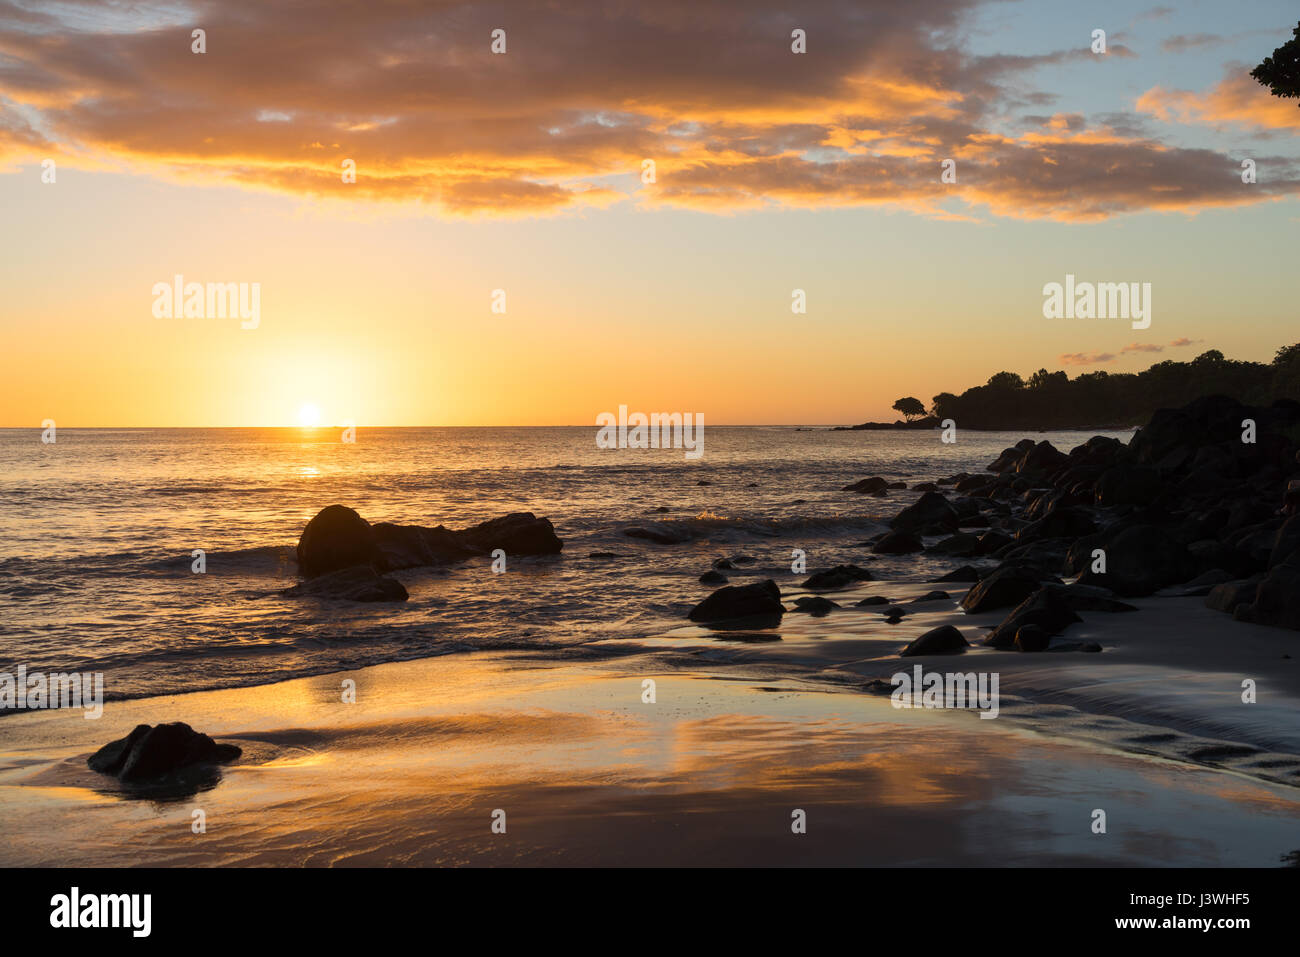 Beautiful sunset at Tamarin, seen from the beach of the Tamarina Golf & Spa Boutique Hotel in Mauritius. Stock Photo